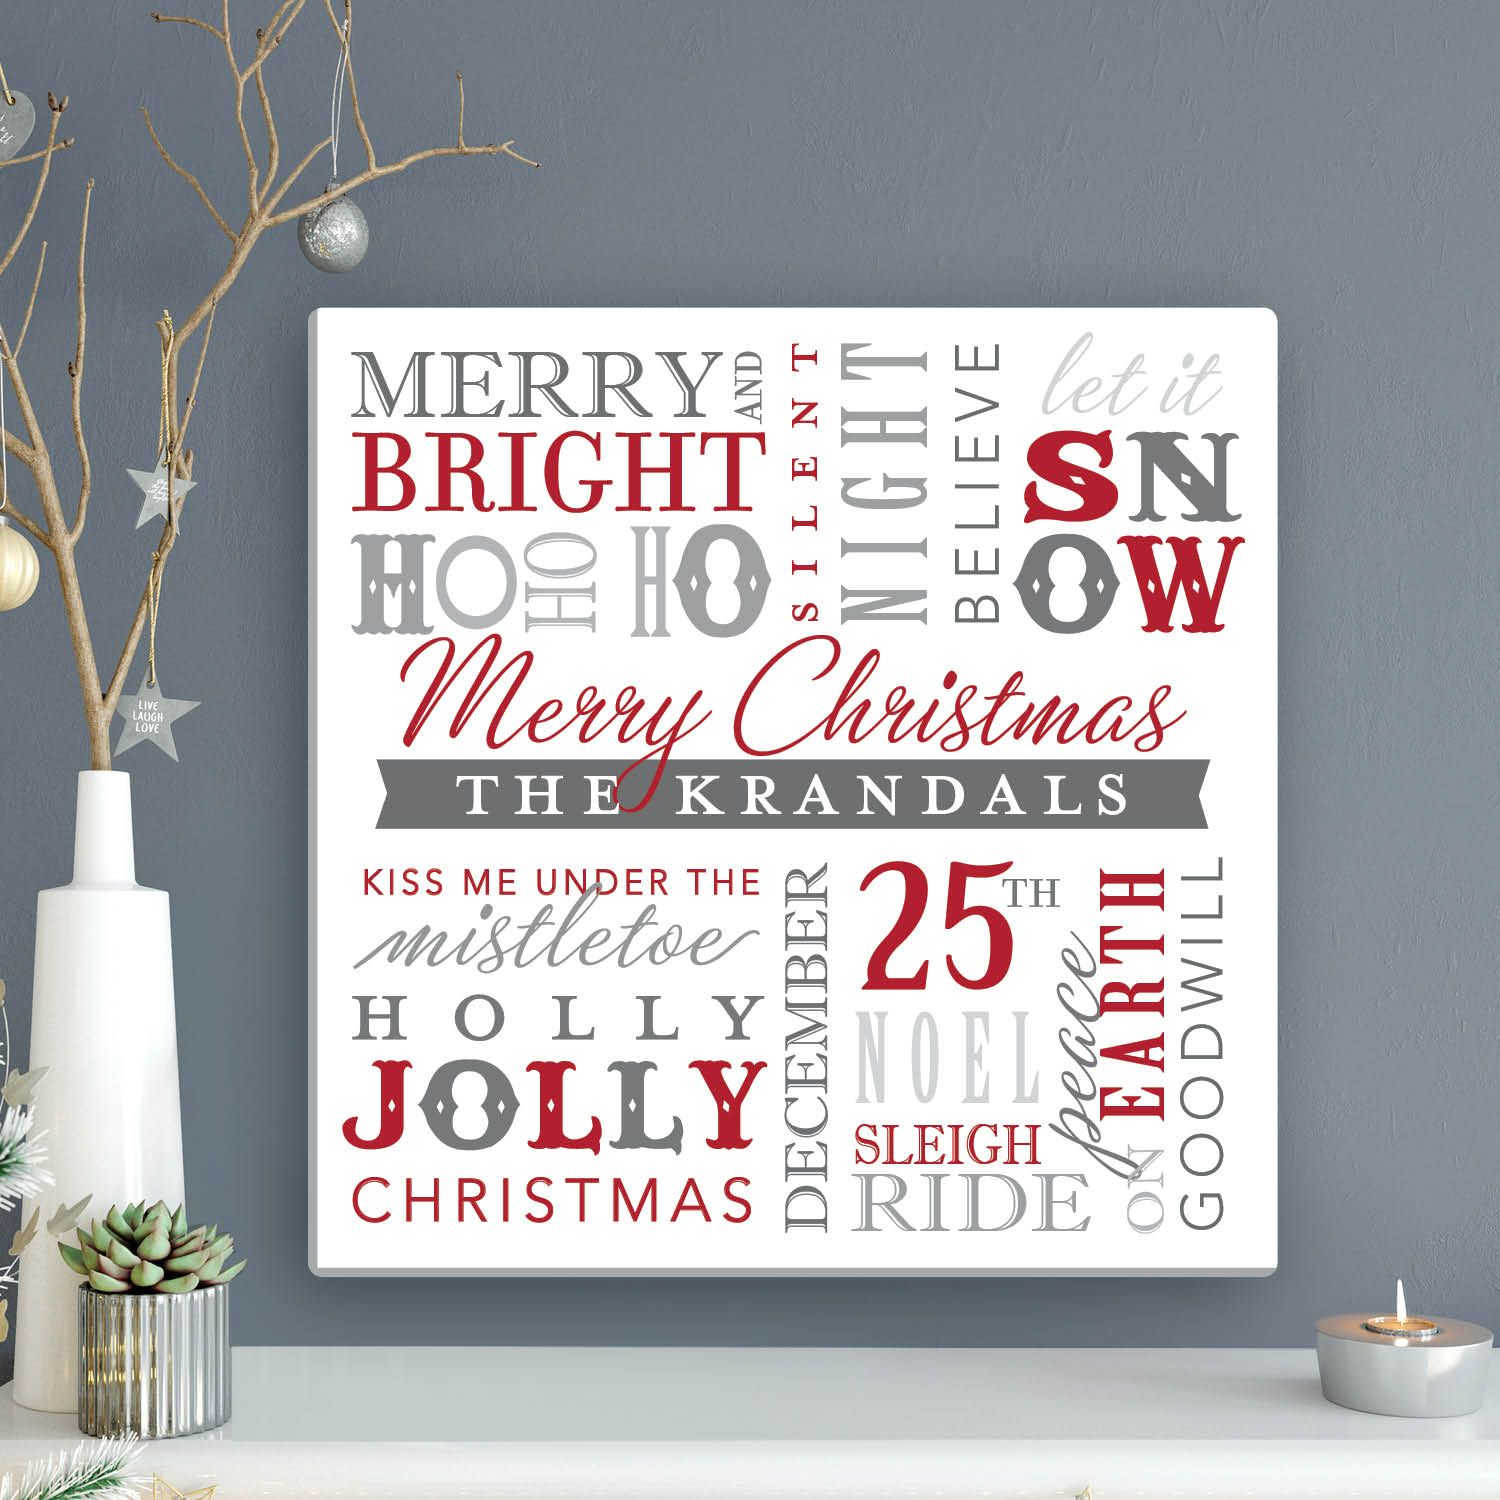 Christmas Words Personalized 12x12 Canvas Personalized Planet Christmas Wall Hangings Christmas Words Christmas Canvas Art